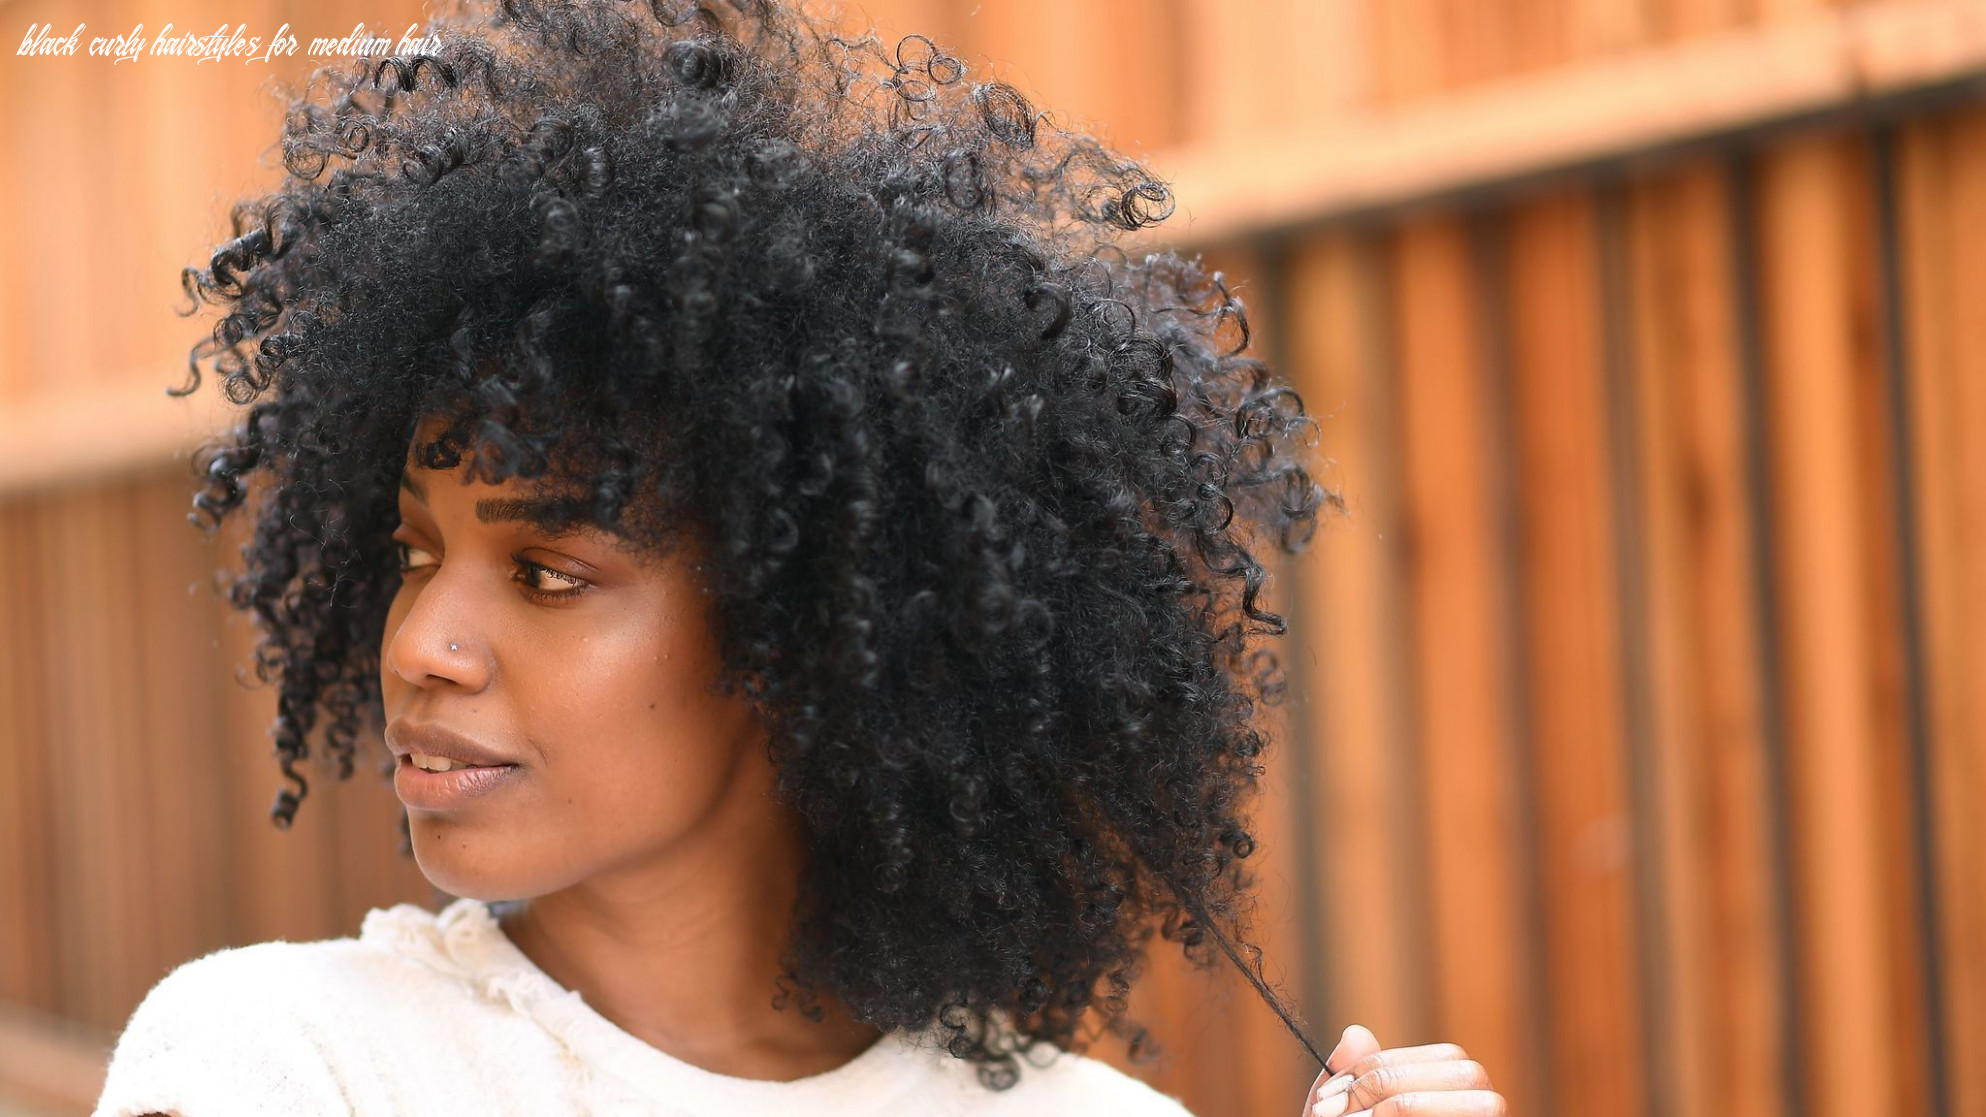 African american natural hairstyles for medium length hair black curly hairstyles for medium hair